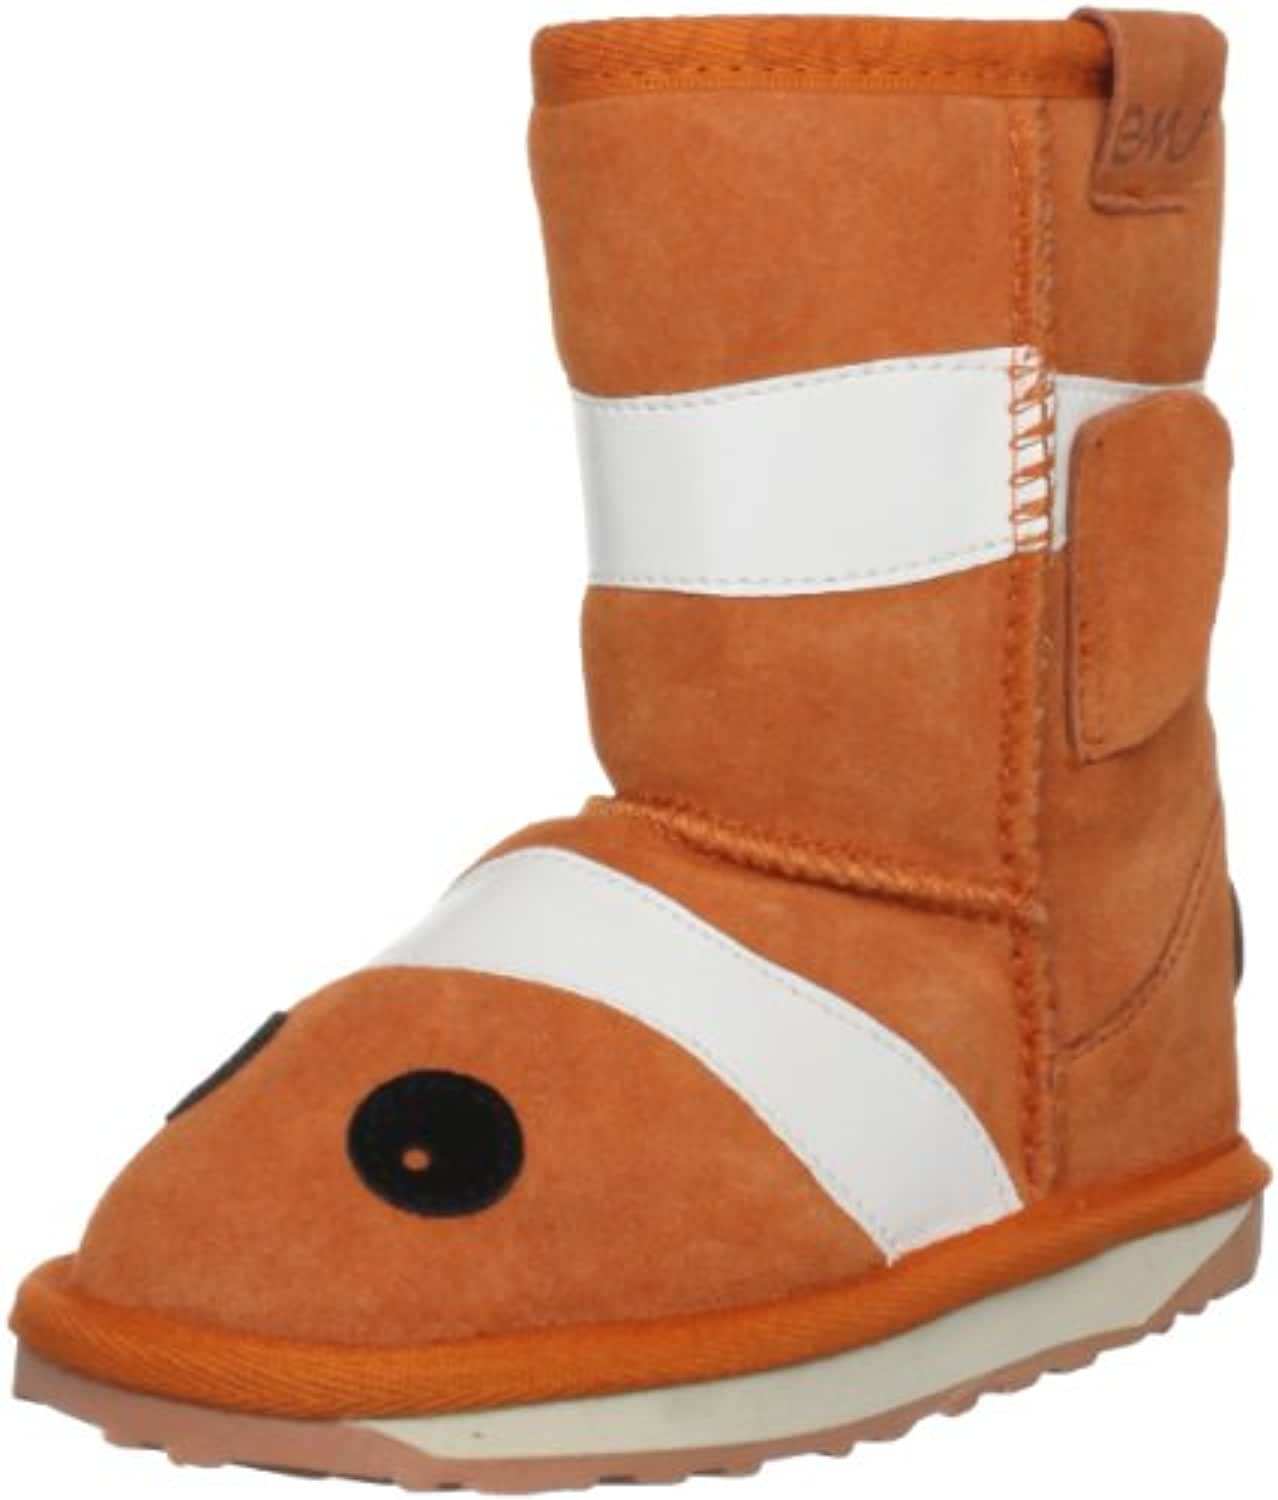 Emu Australia Junior Little Creaures Clown Fish Orange Classic Boot K10593 2 UK